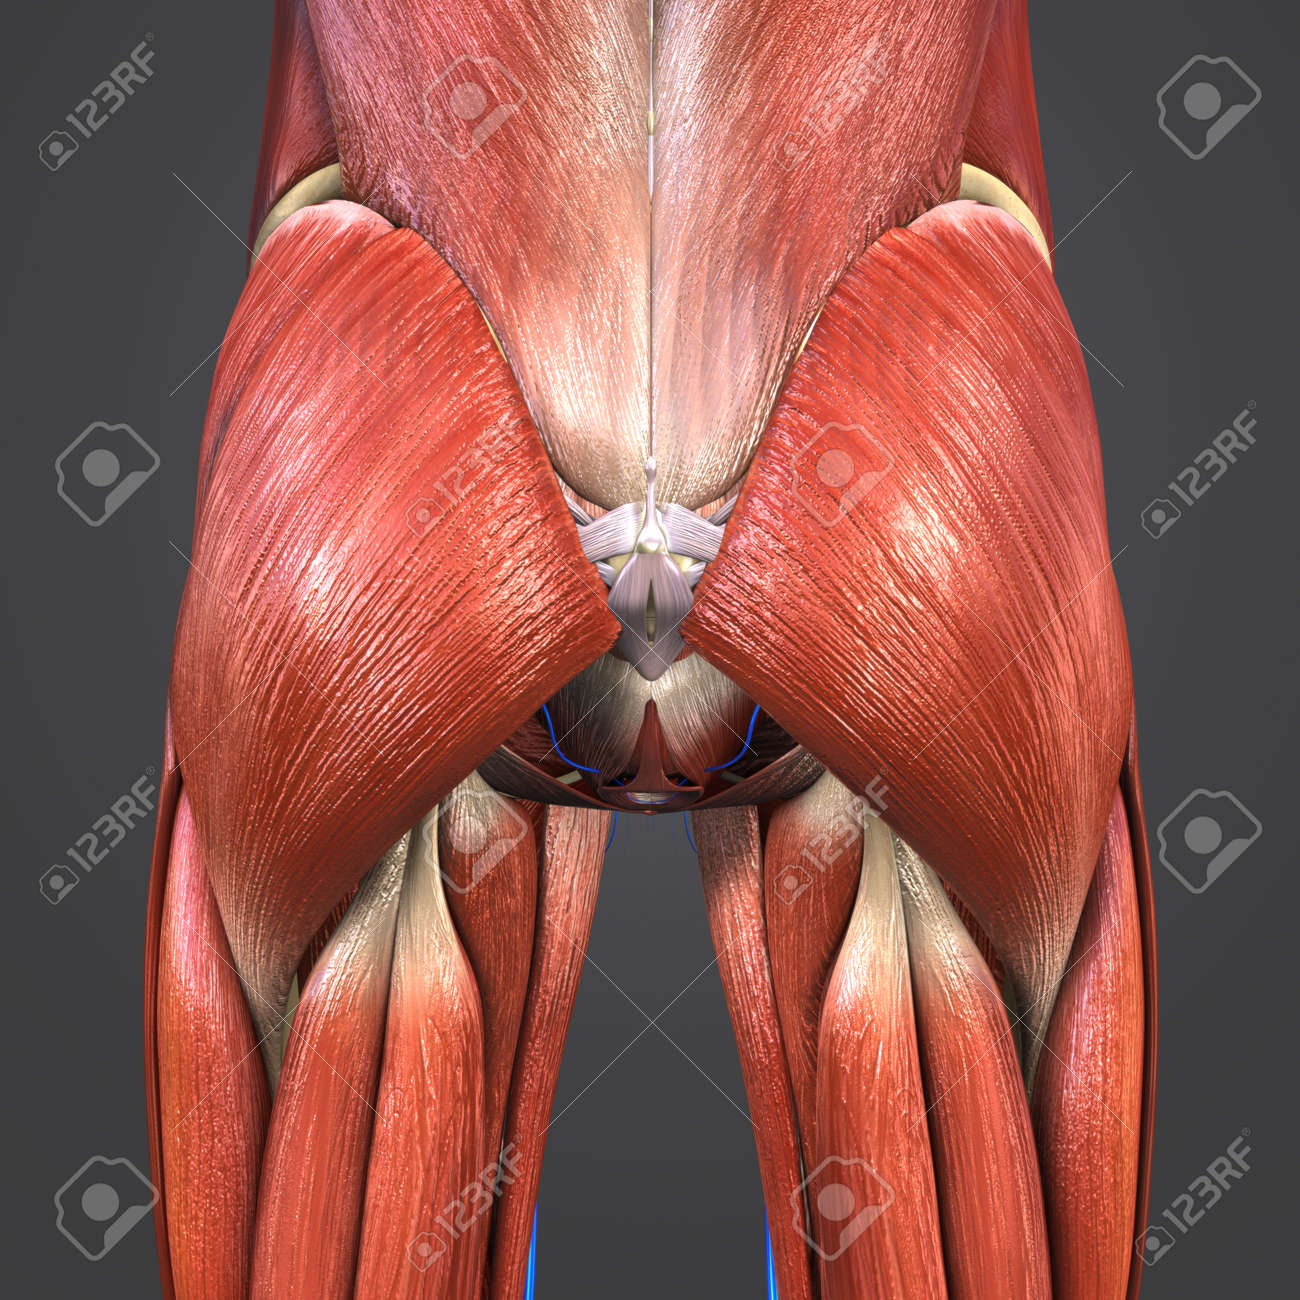 Hip Muscles And Bones With Veins Stock Photo Picture And Royalty